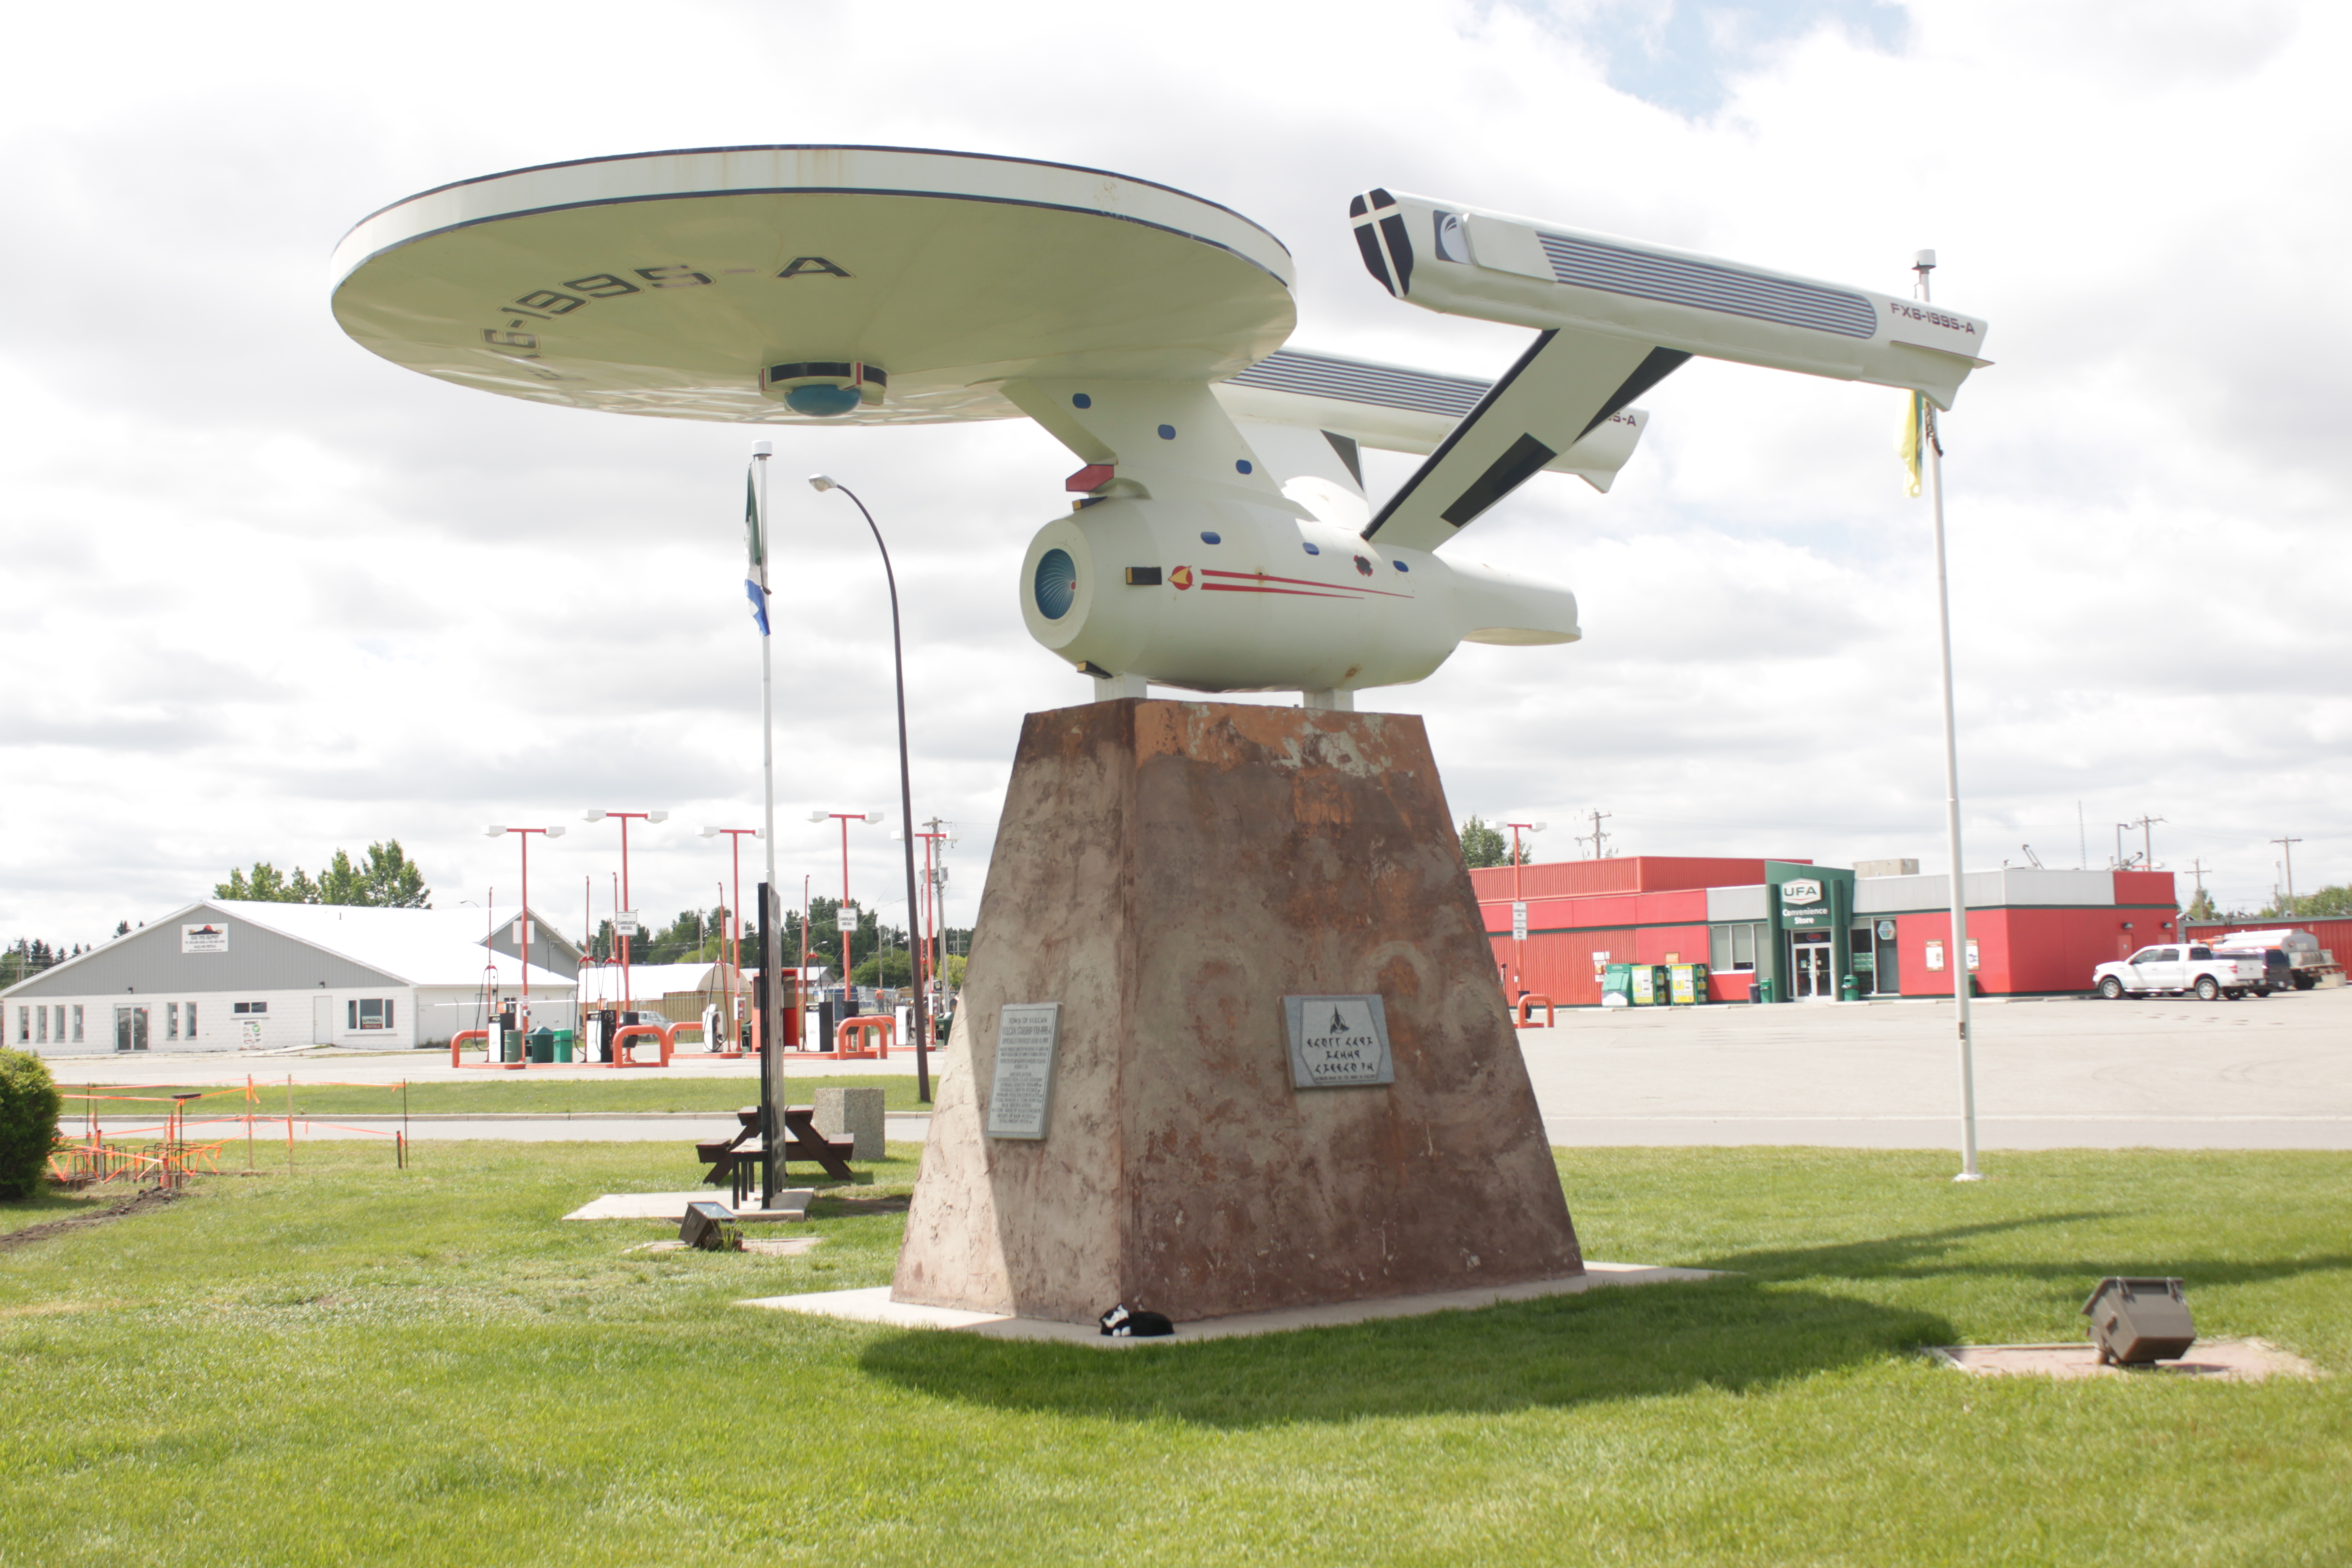 Fox Creek (AB) Canada  city photos gallery : Description Enterprise monument Vulcan Alberta 2013